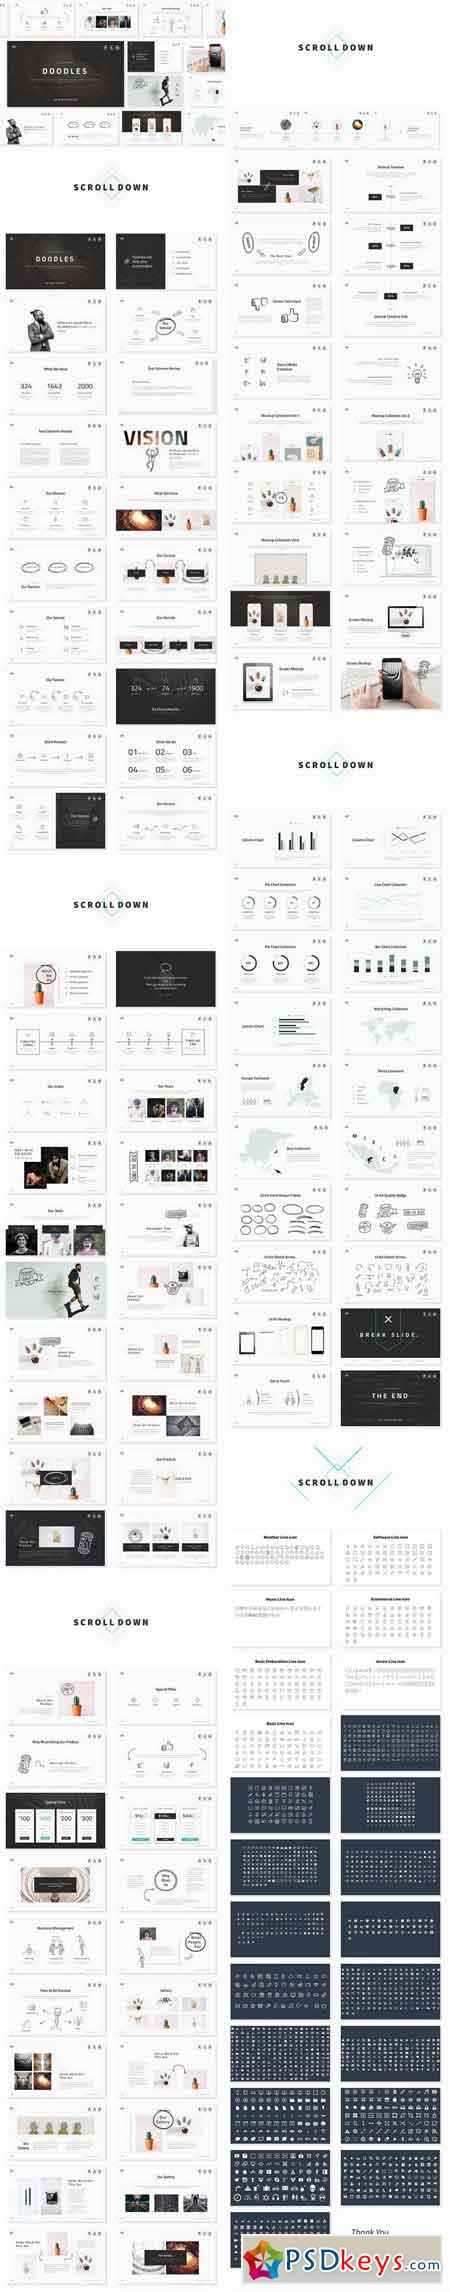 Doodles Multipurpose Theme 963519